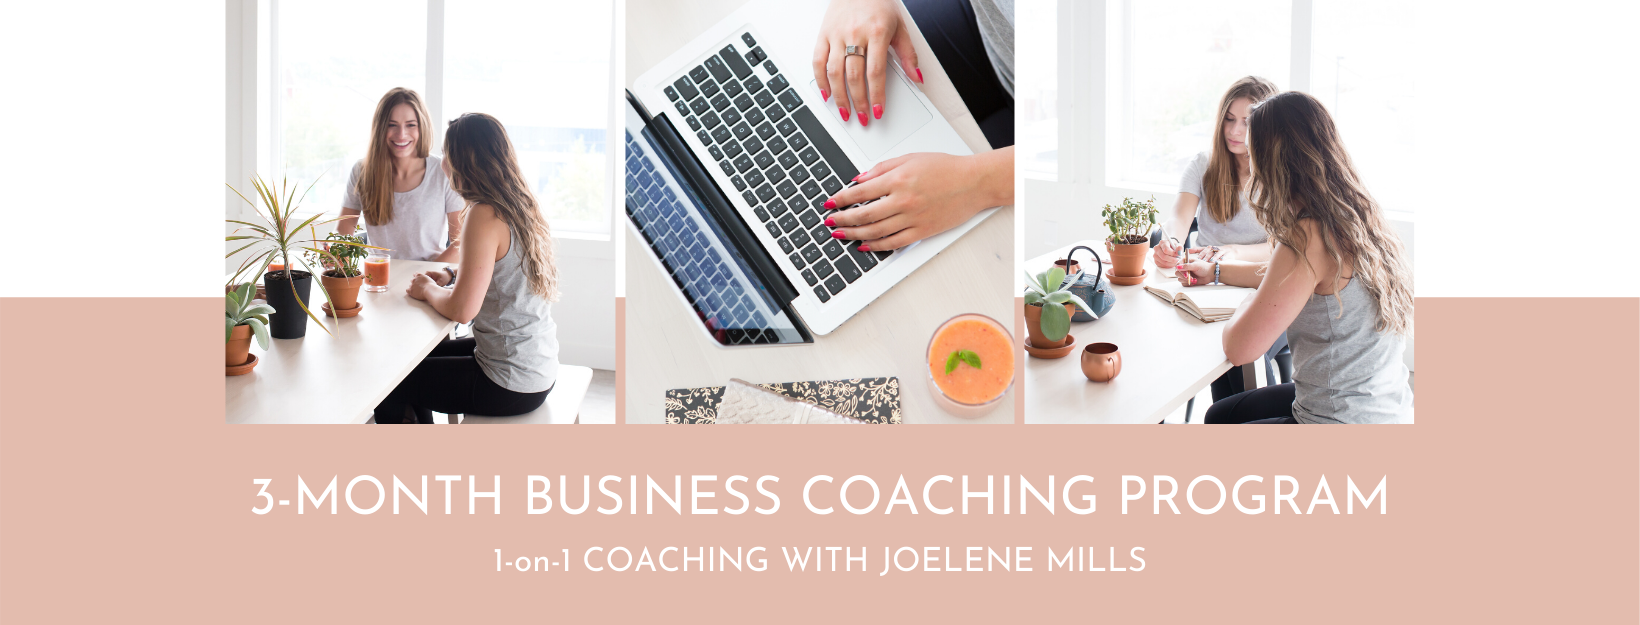 women working together in an office. One on one coaching with joelene mills